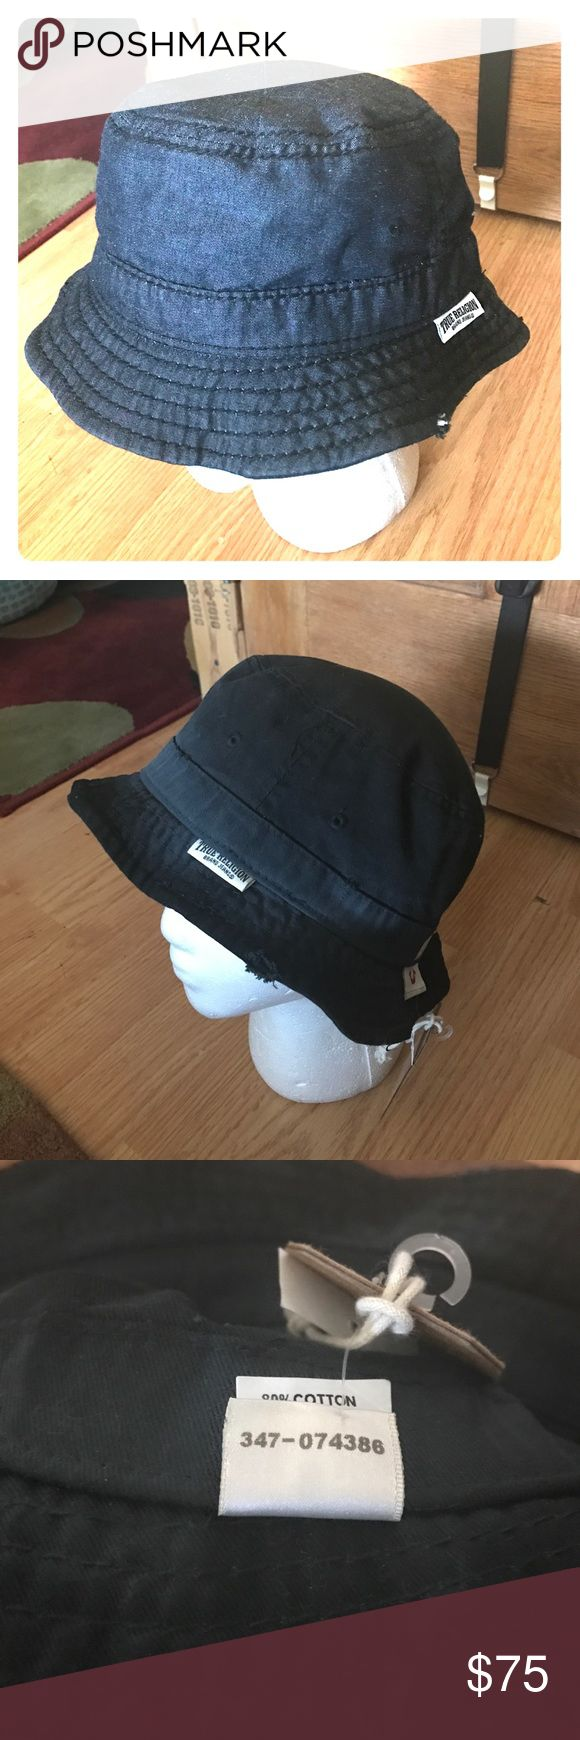 True Religion Denim Bucket Cap Reversible demon on one side black on the other. Distressed look small medium size True Religion Accessories Hats